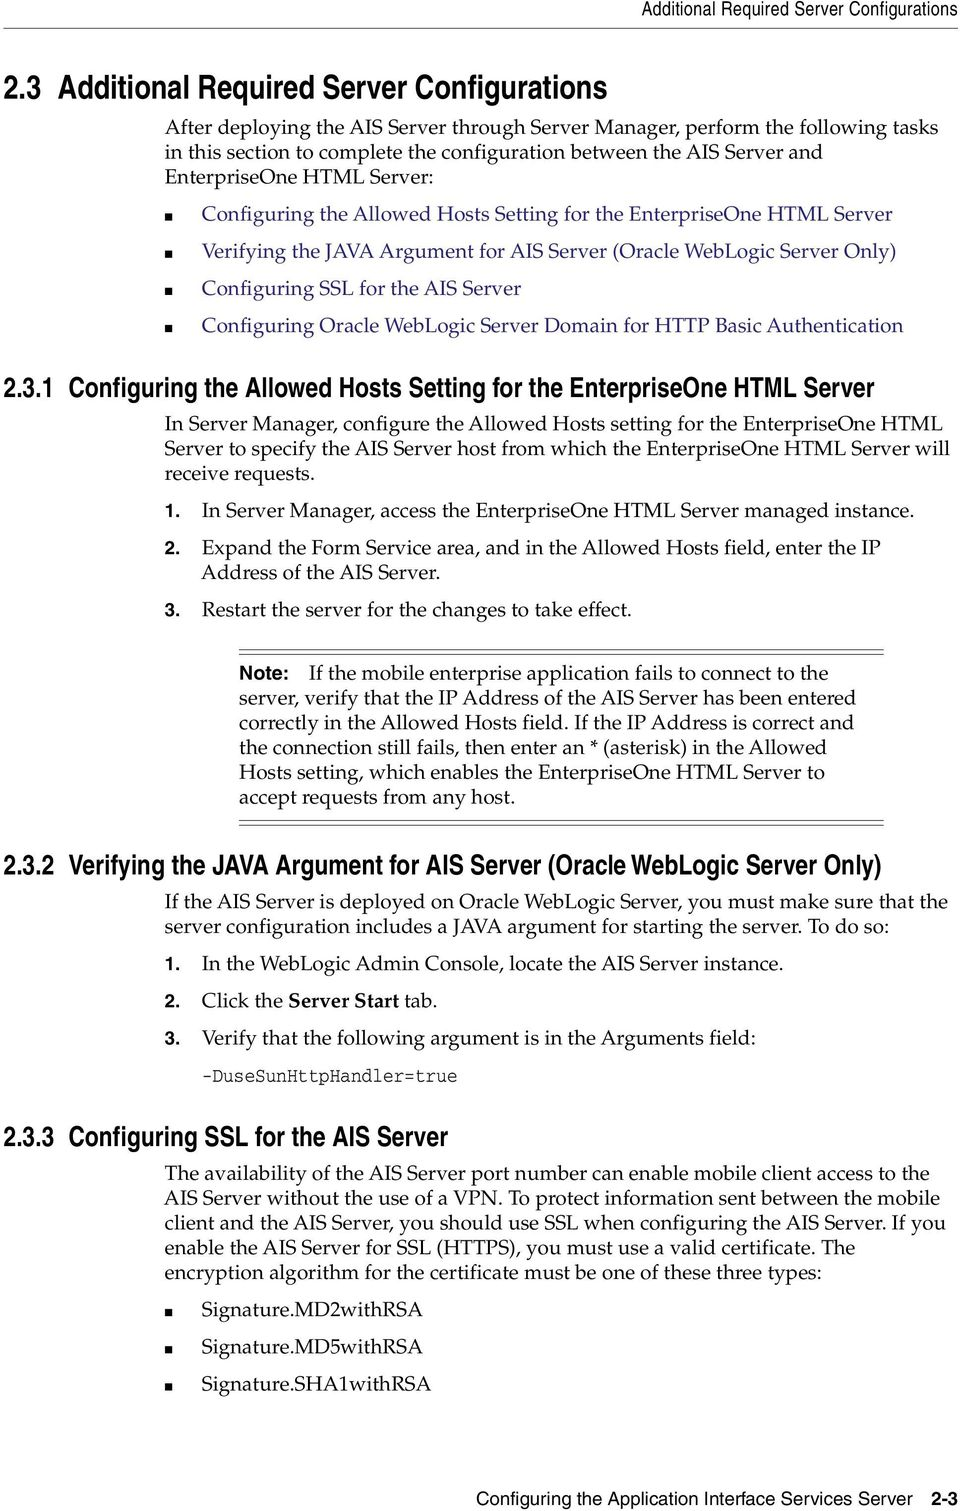 EnterpriseOne HTML Server: Configuring the Allowed Hosts Setting for the EnterpriseOne HTML Server Verifying the JAVA Argument for AIS Server (Oracle WebLogic Server Only) Configuring SSL for the AIS